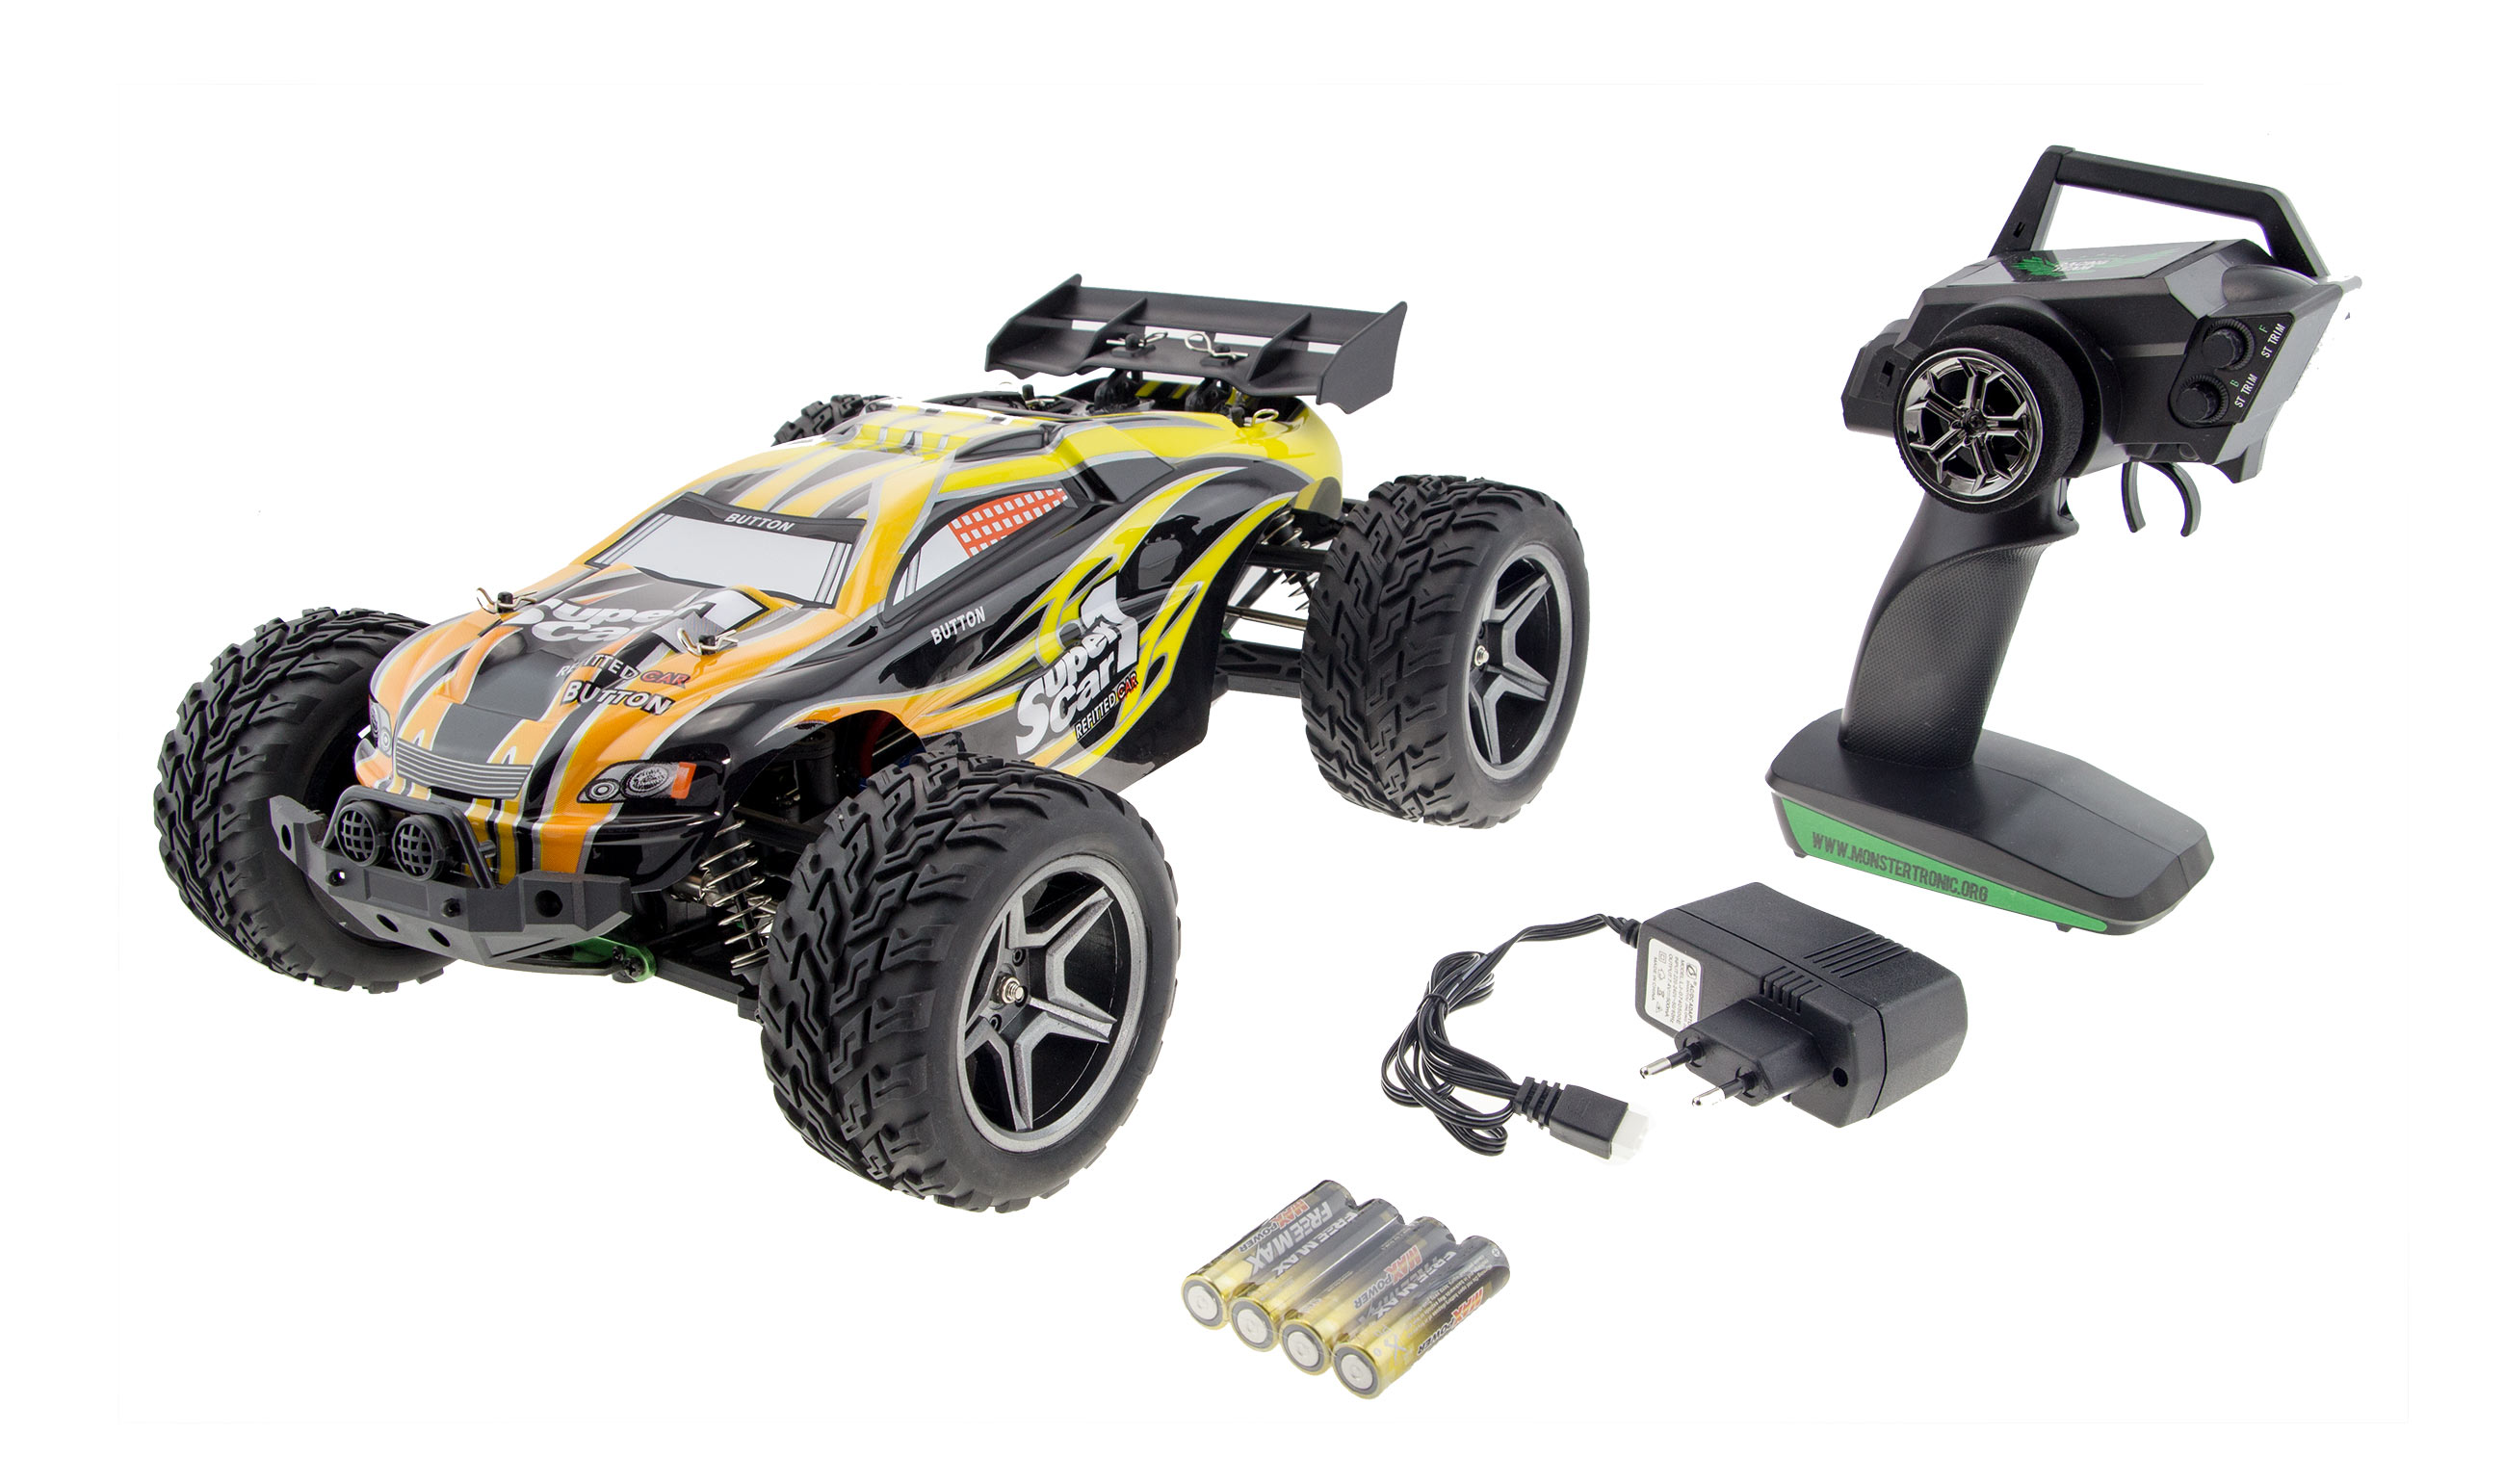 MT2044 Monstertronic Truggy 4WD RTR Set